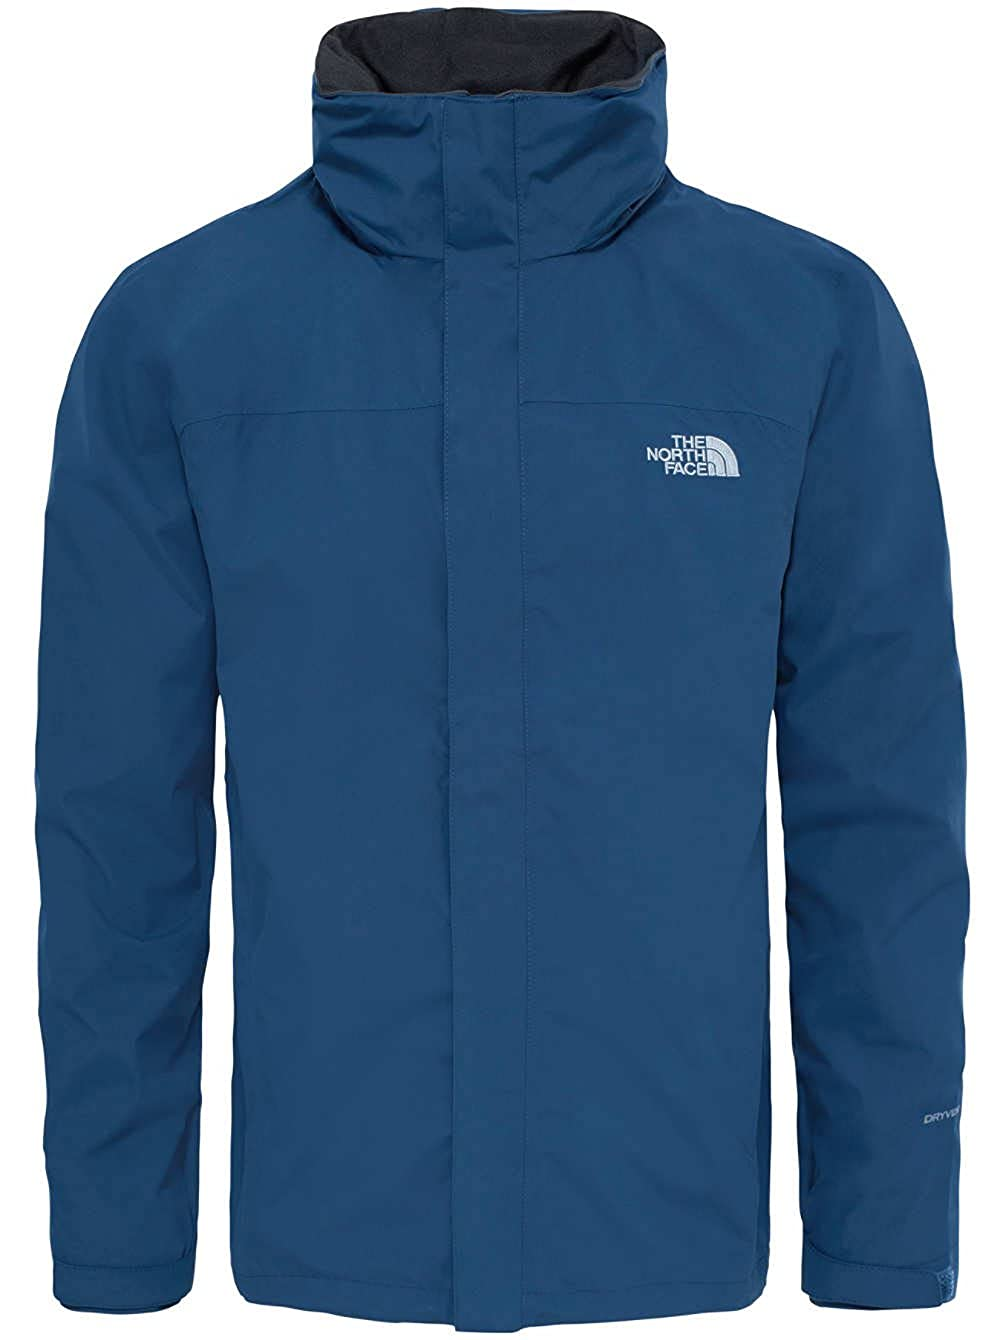 The North Face Mens Sangro Jacket TNF Black M